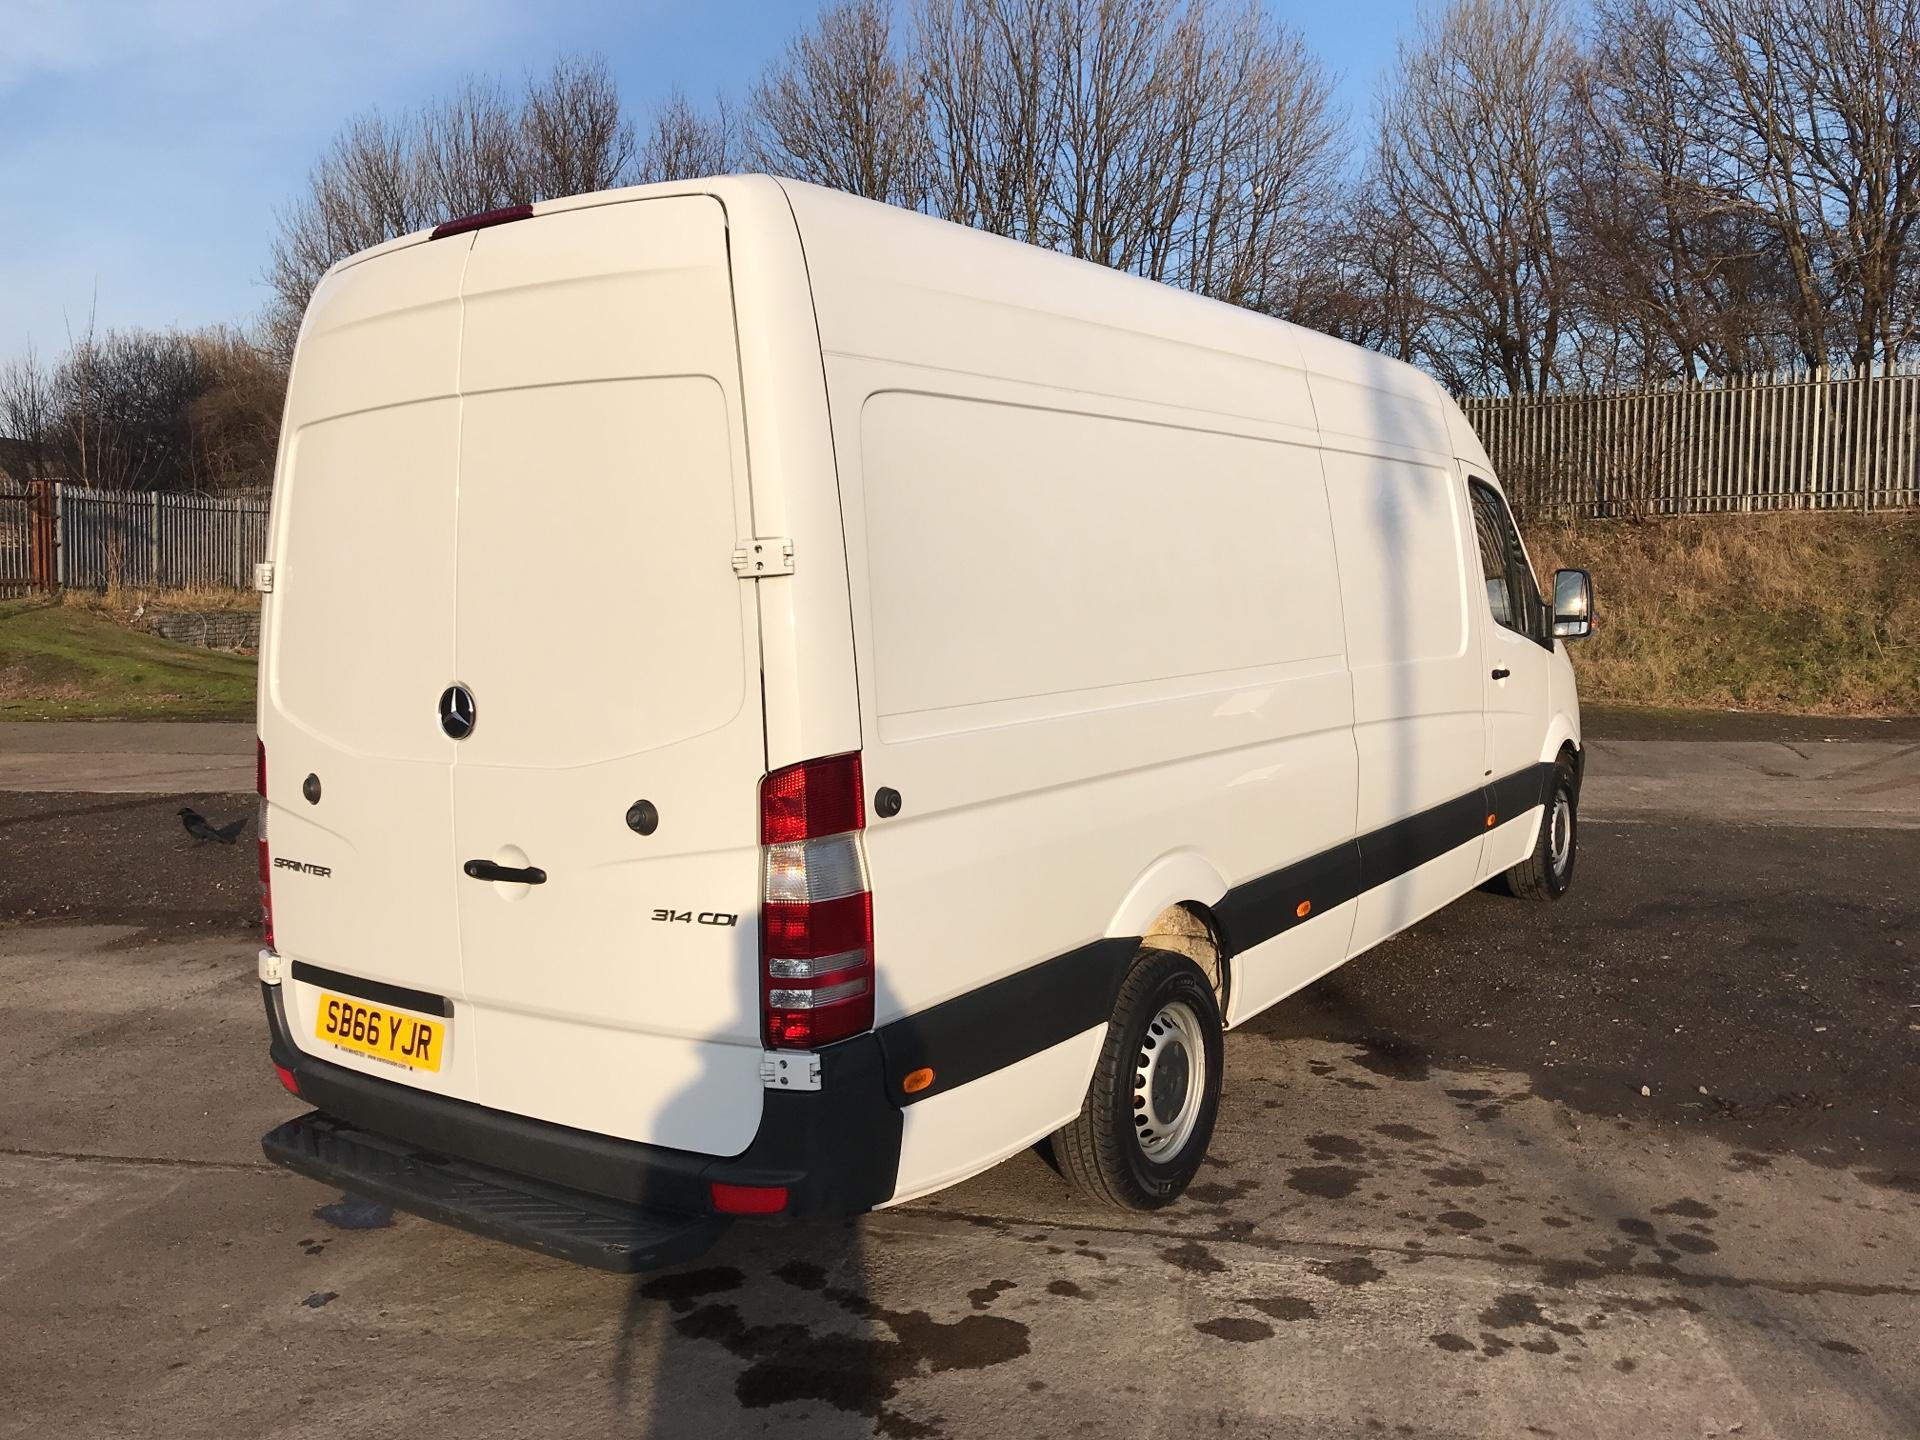 2016 Mercedes-Benz Sprinter 314 CDI LWB HIGH ROOF VAN EURO 6 (SB66YJR) Thumbnail 3